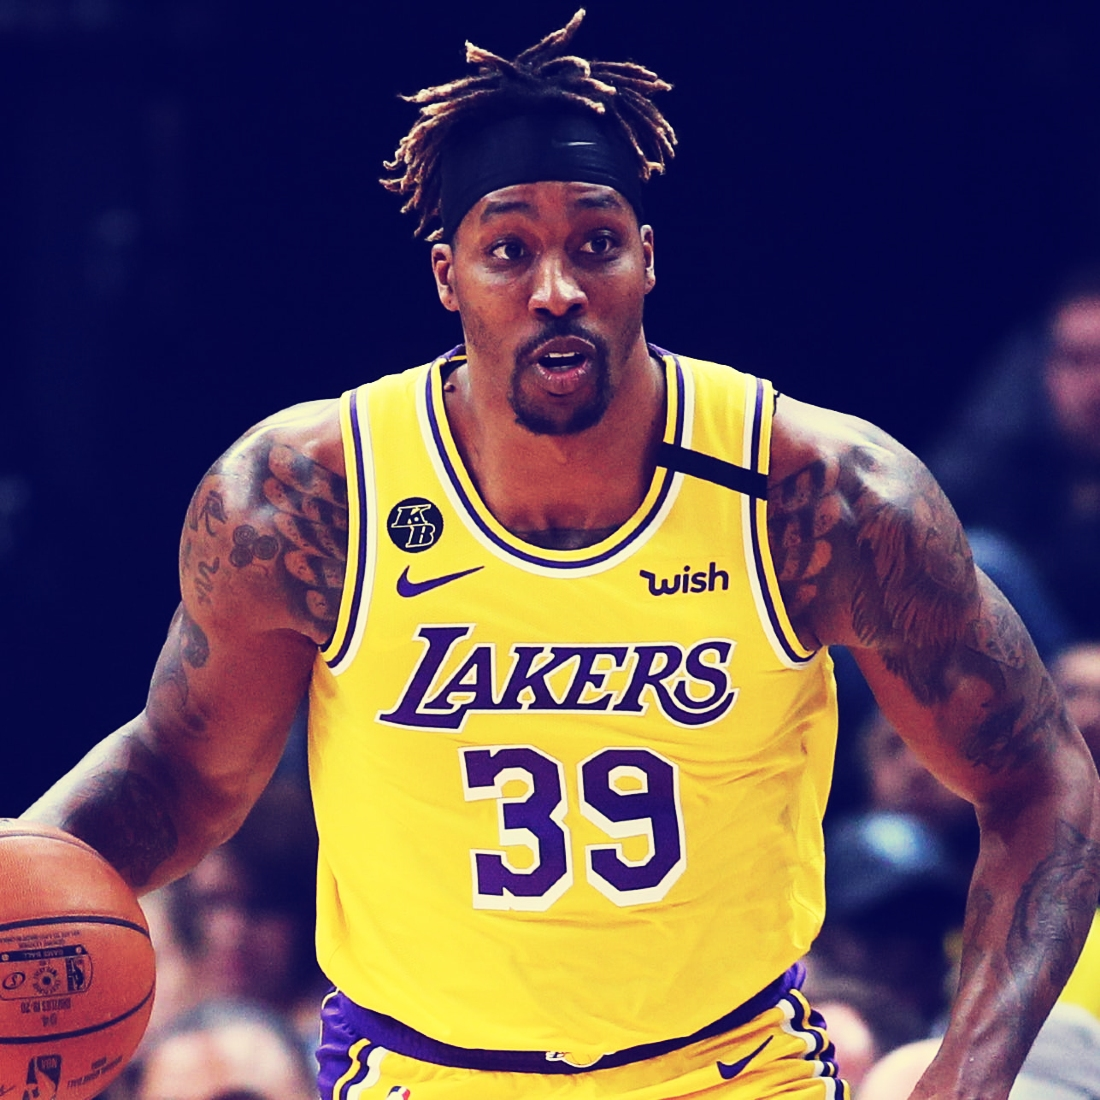 The Bubble Finals Will Be A Mismatch With The Lakers Winning In 5 Games!